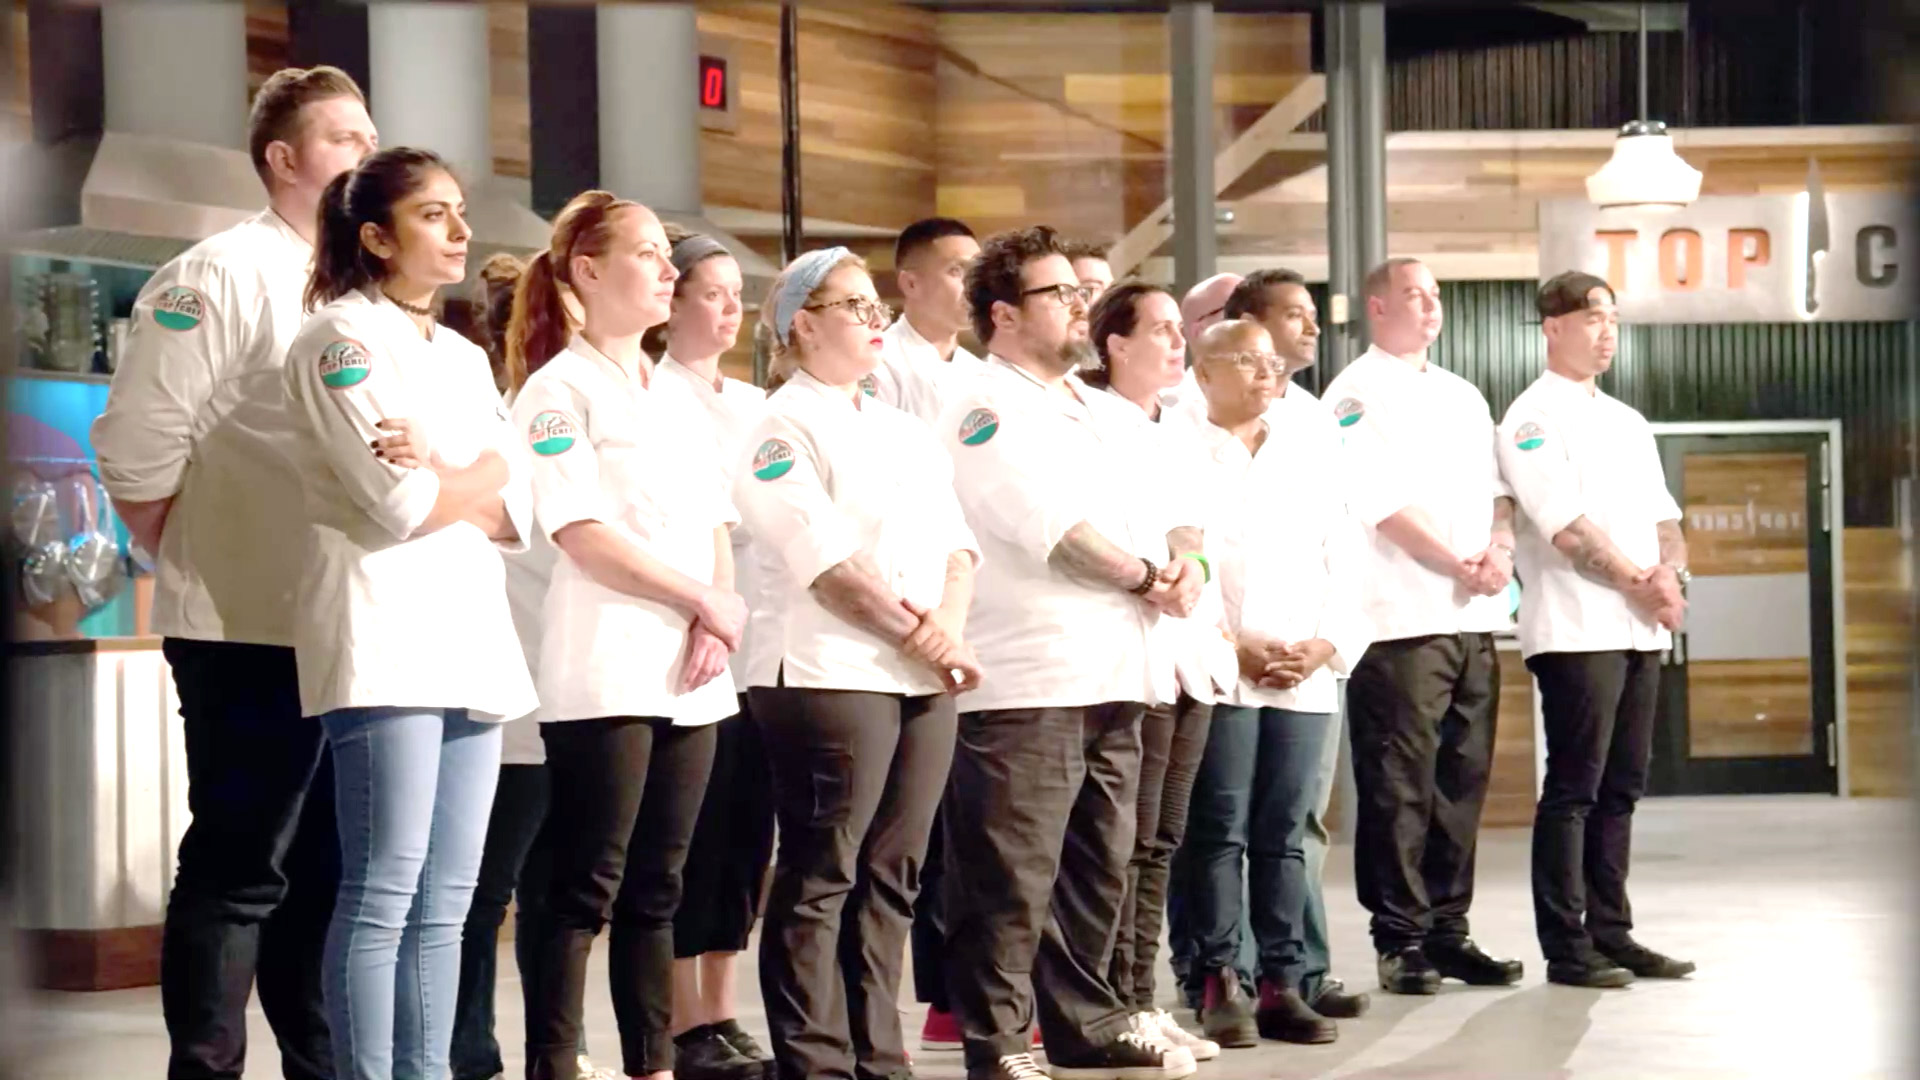 Introducing Top Chef Season 15's Cheftestants